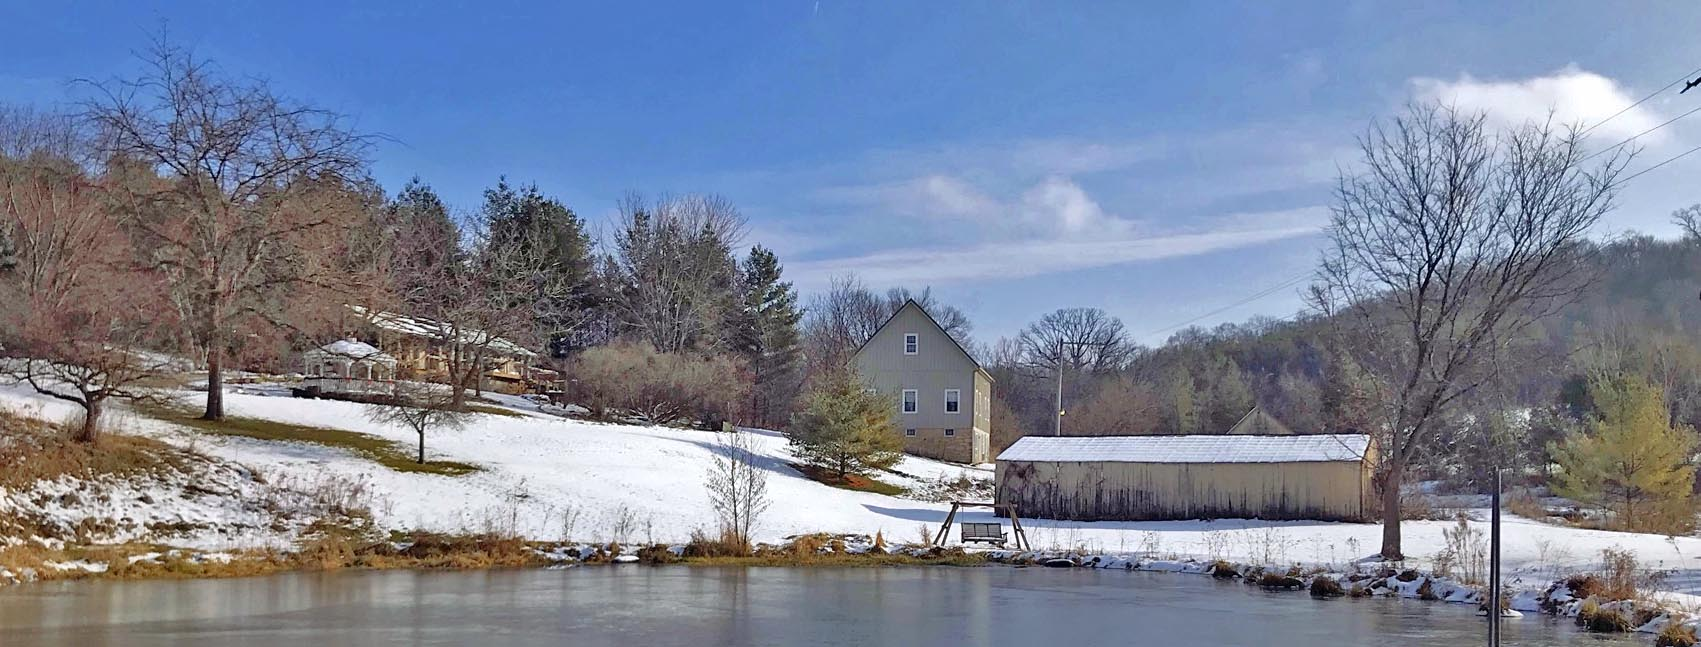 looking at barn and house from pond in winter